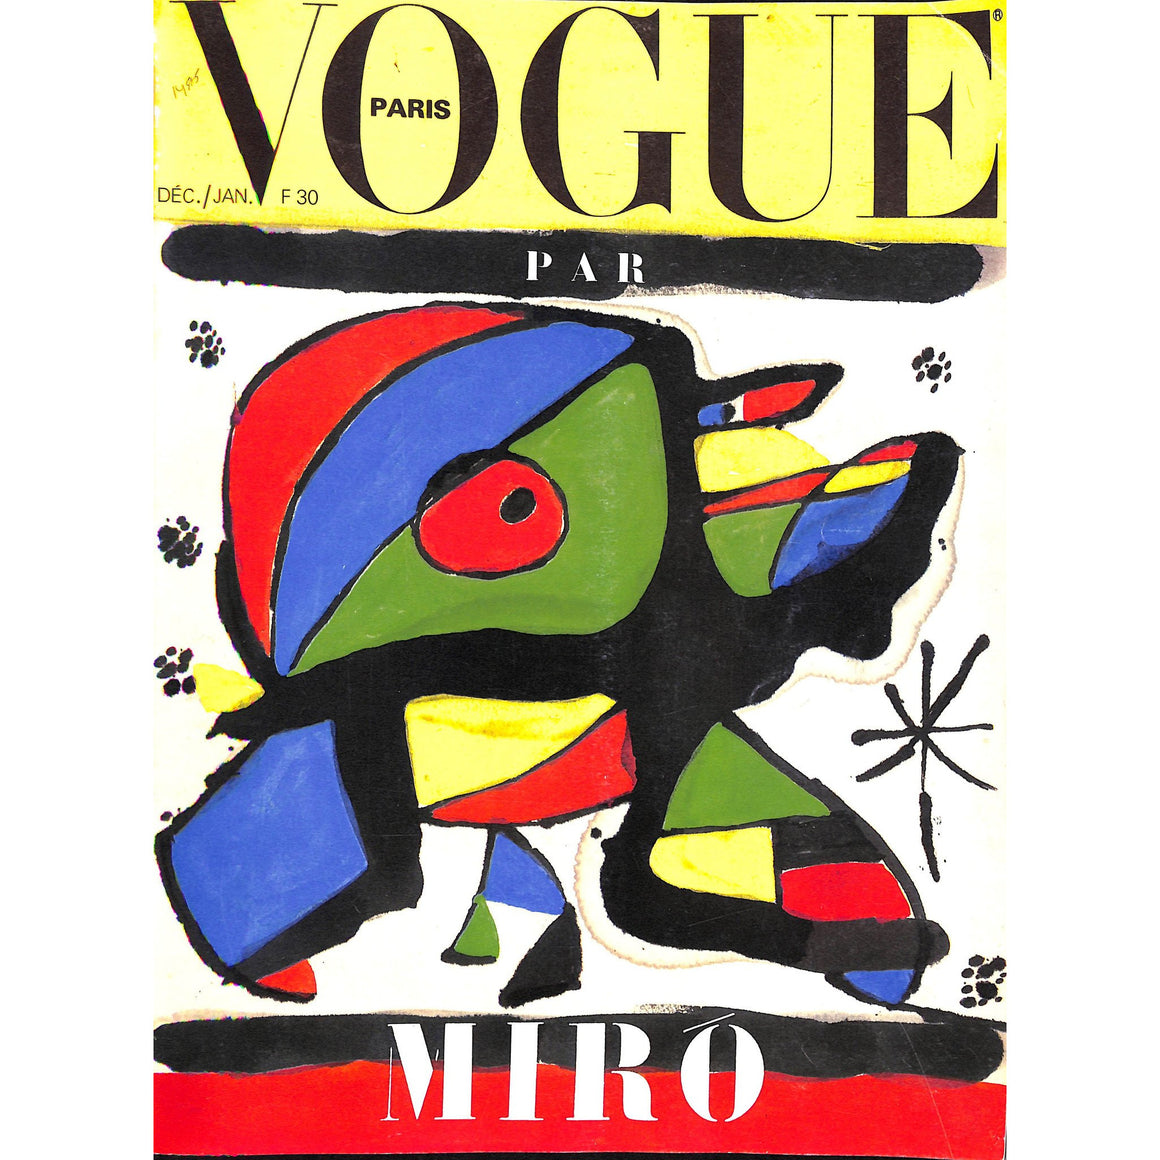 Vogue Paris: Miro Issue